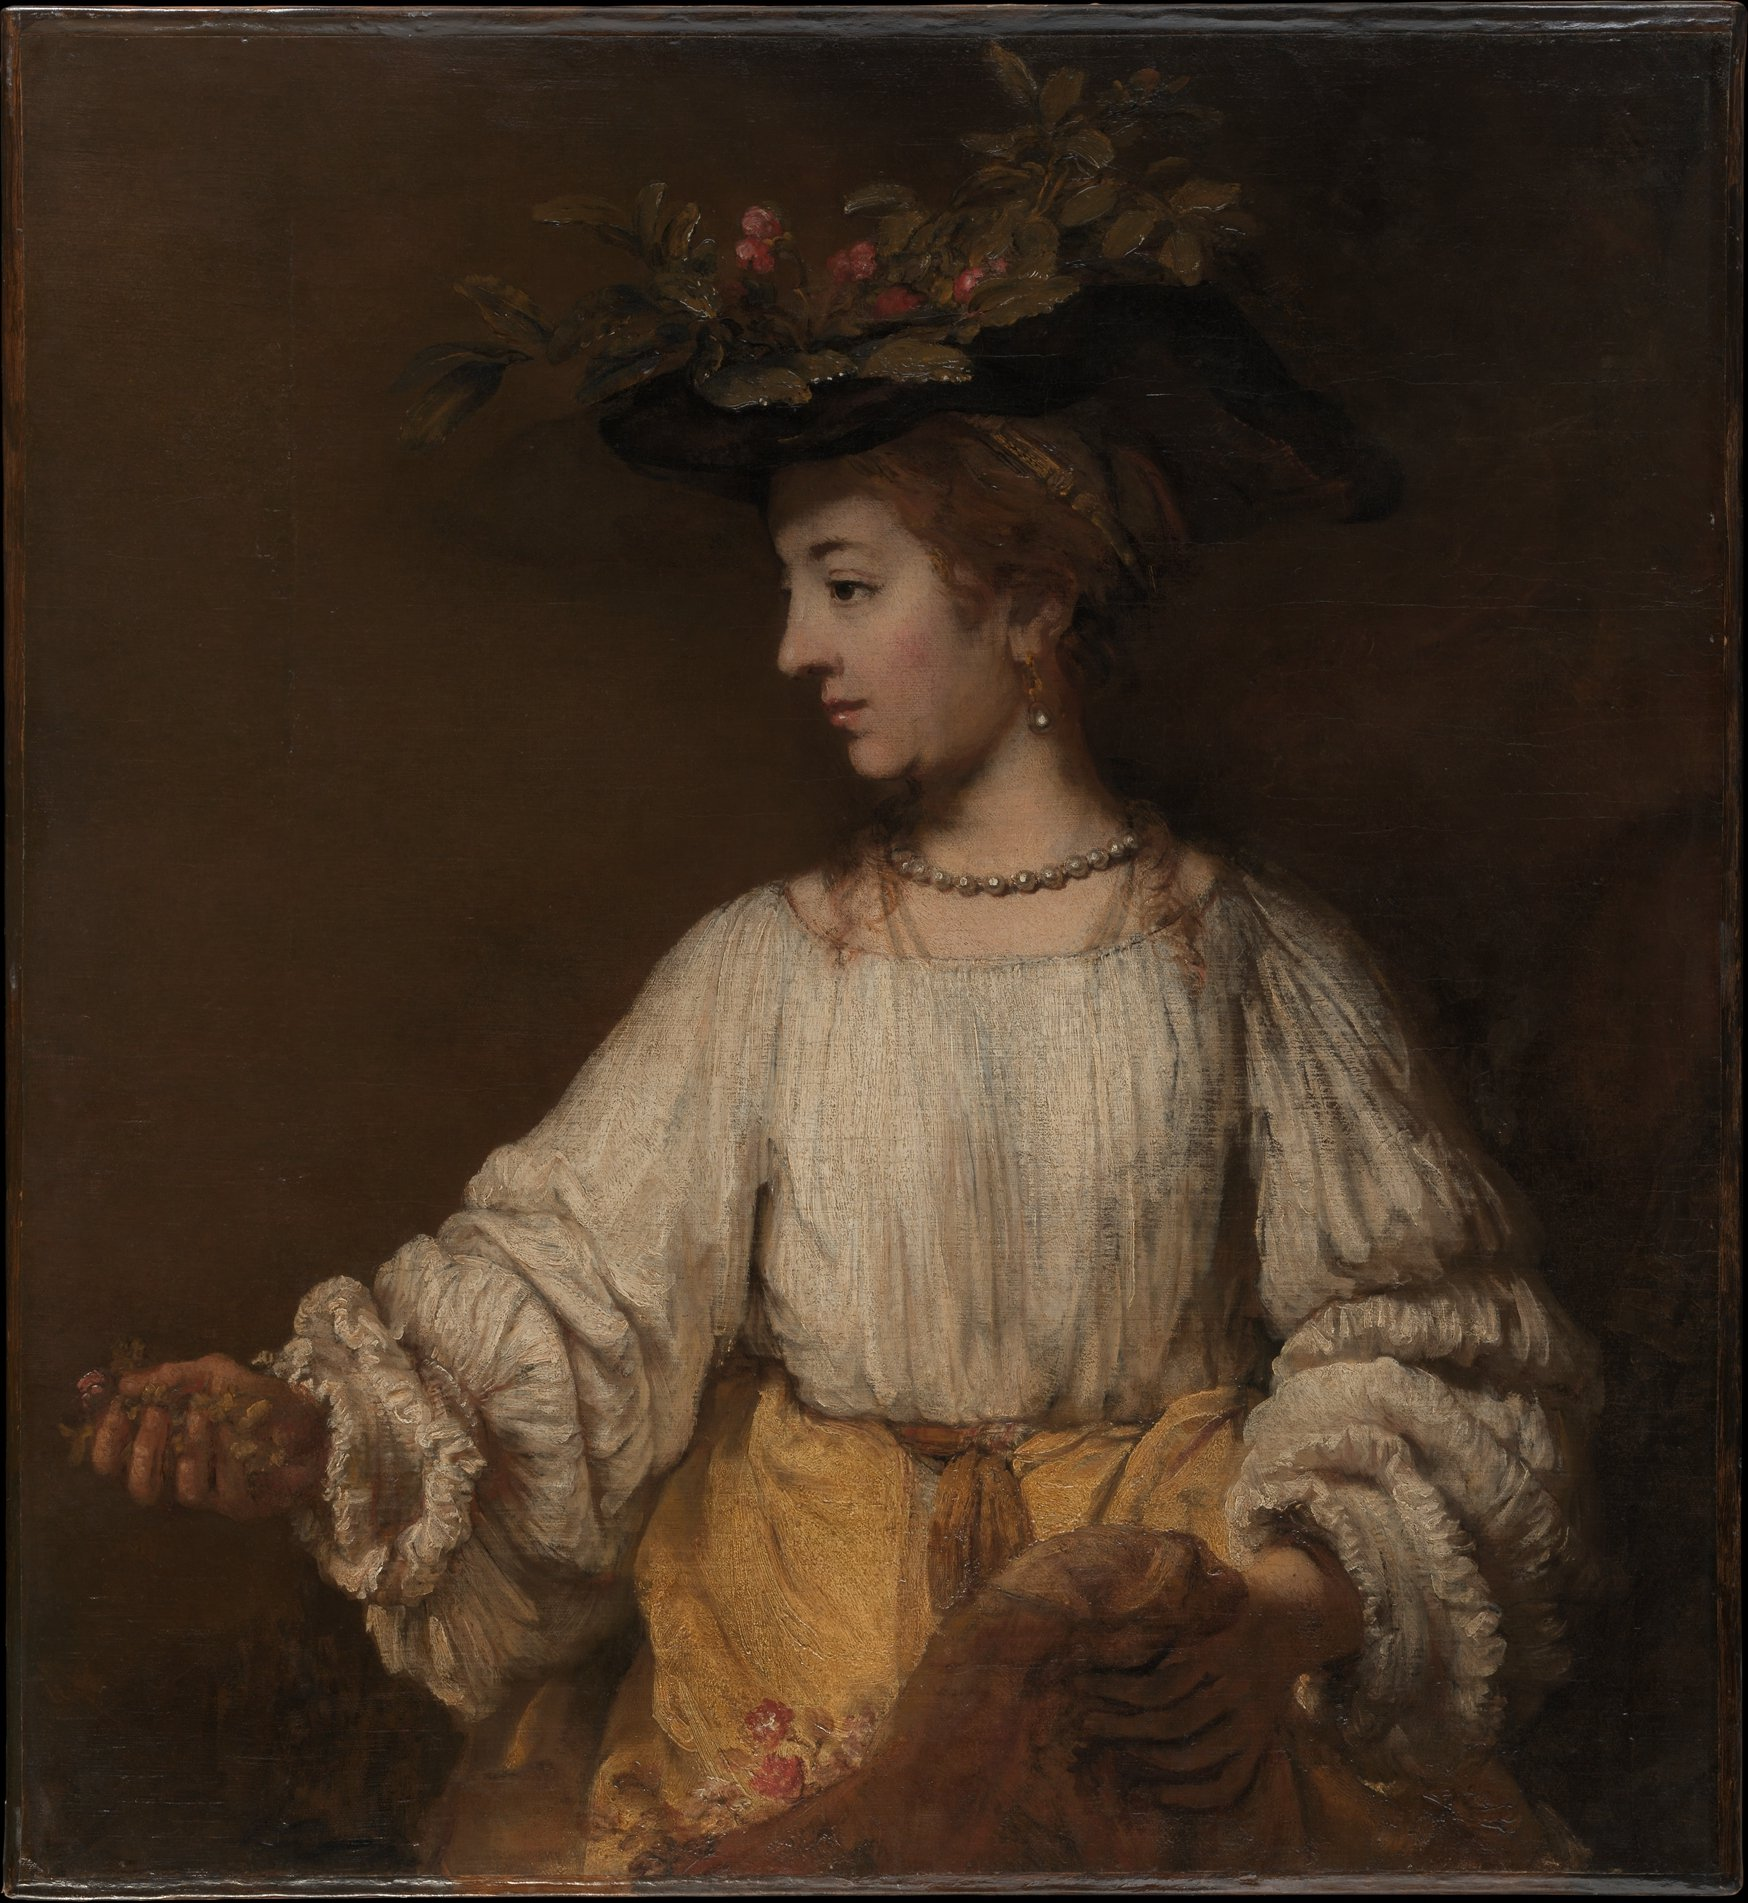 Flora, Rembrandt, Oil on canvas, ca. 1654, 39 3/8 x 36 1/8 in. (100 x 91.8 cm), The Metropolitan Museum of Art, fine art, london, london fine art studios, oil painting workshops, art classes london, classical art, chiaroscuro